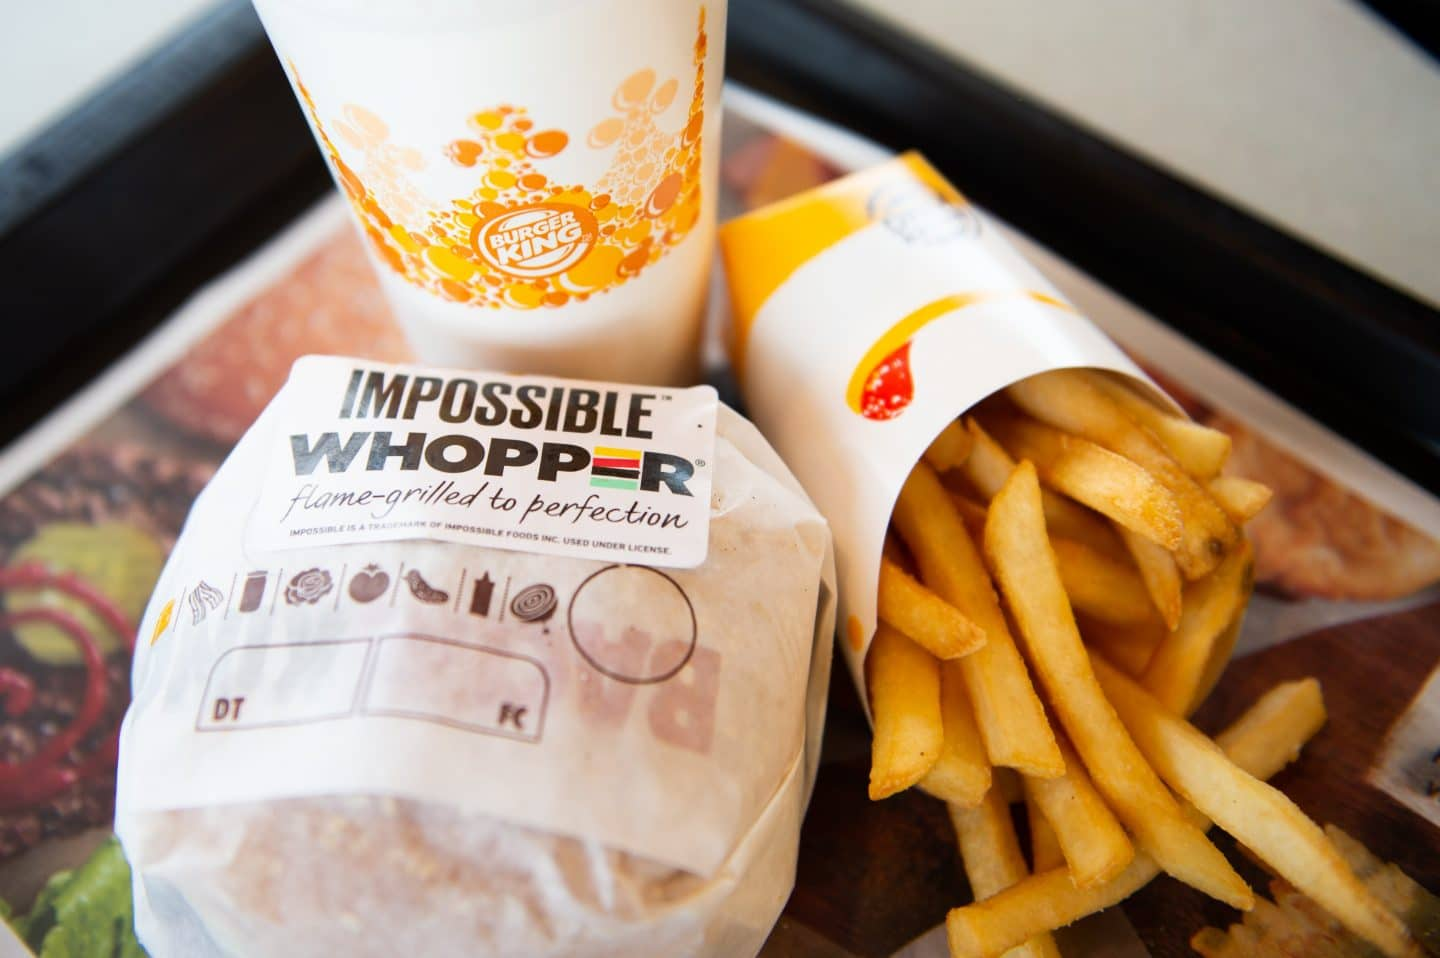 This Fast-Food Chain Is Releasing A Vegetarian Burger That Tastes Exactly Like A Whopper